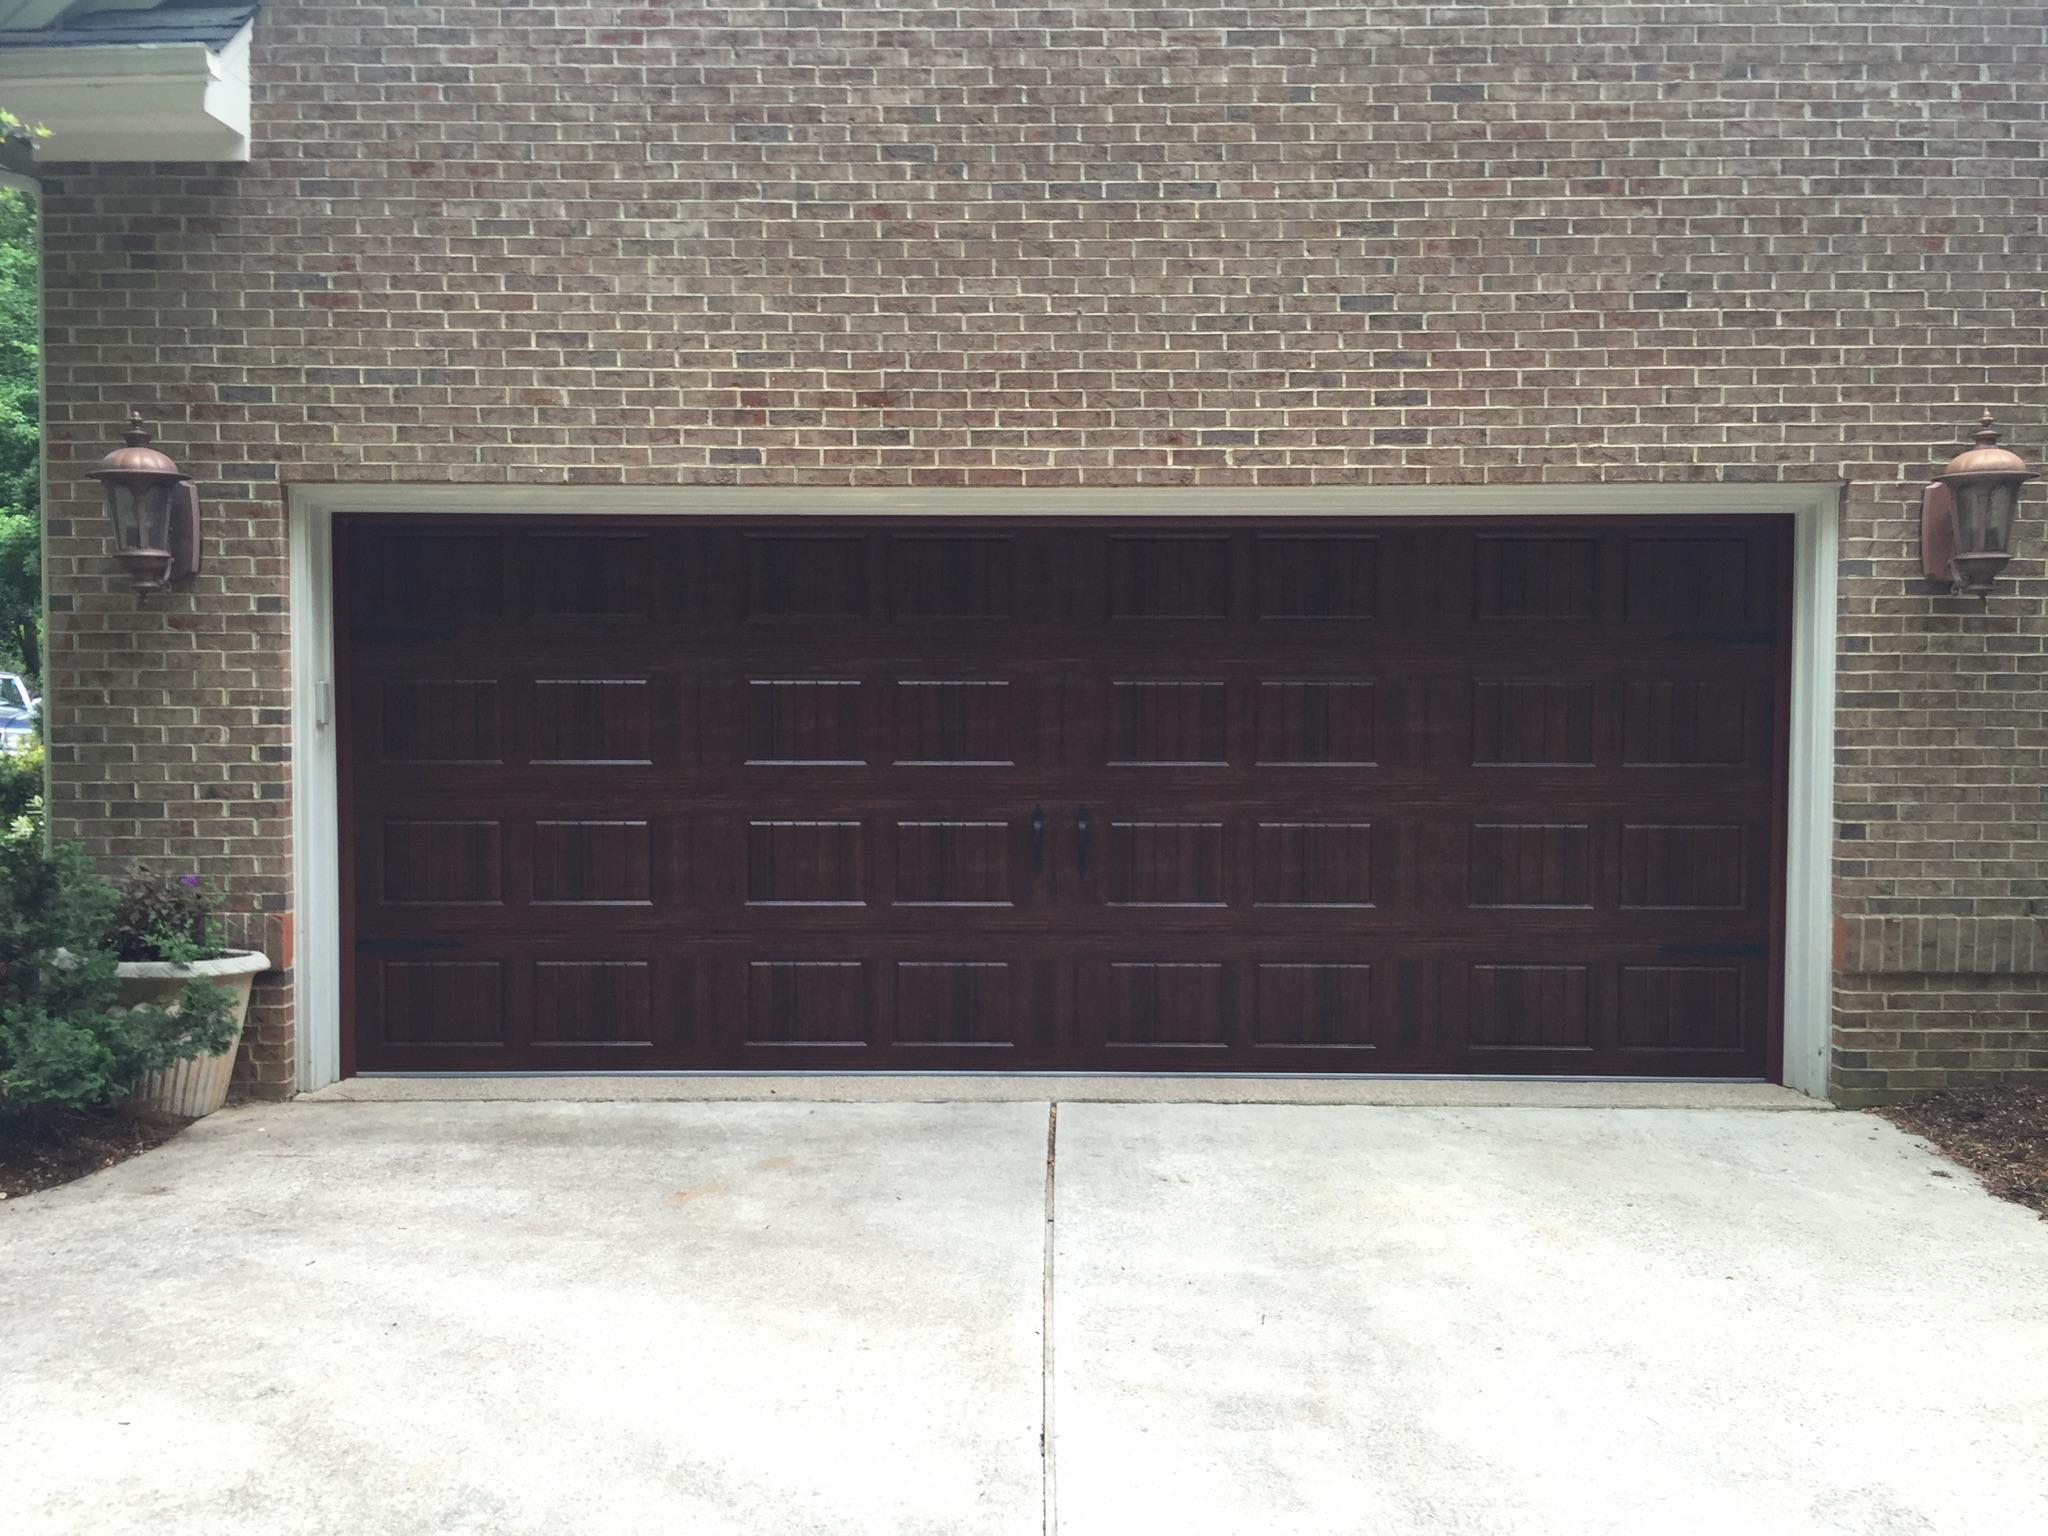 1536 #736758 All American Overhead Garage Door Inc. In Wendell NC 27591  image Overhead Garage Doors Residential Reviews 37132048